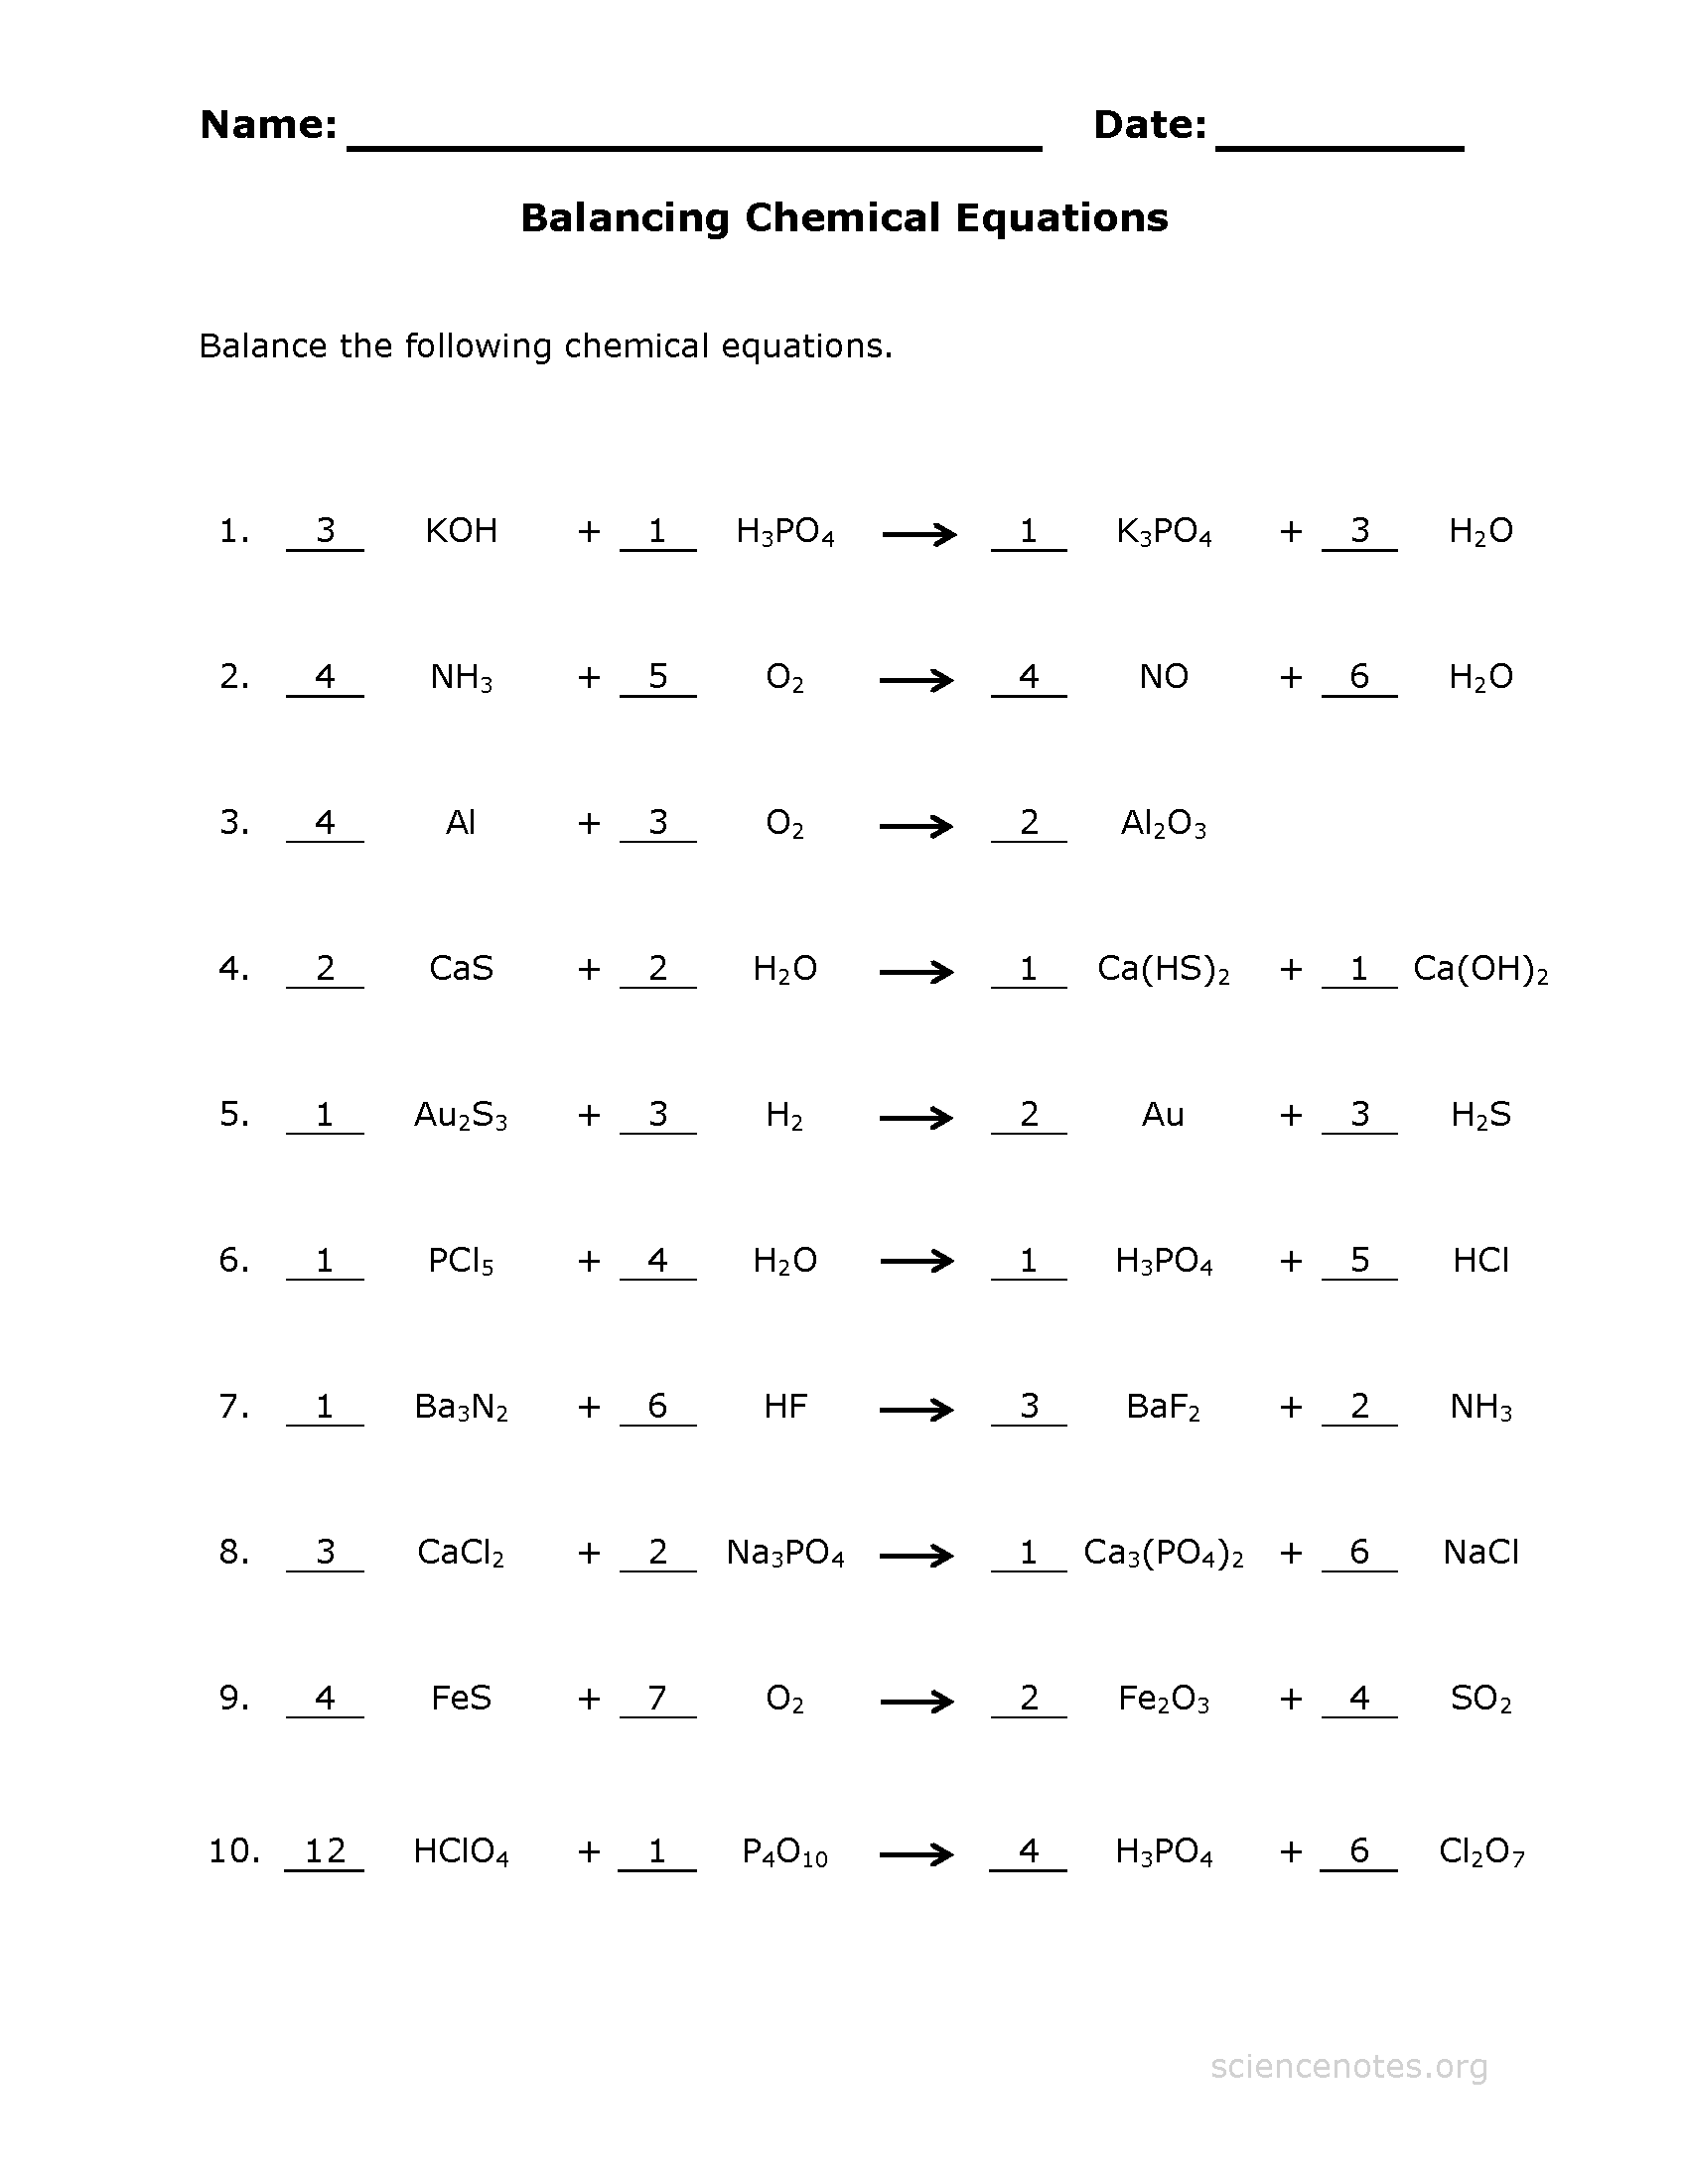 worksheet Balancing Equations Worksheet 2 Answers balancing chemical equations practice sheet to see the completed check out our other equation worksheets